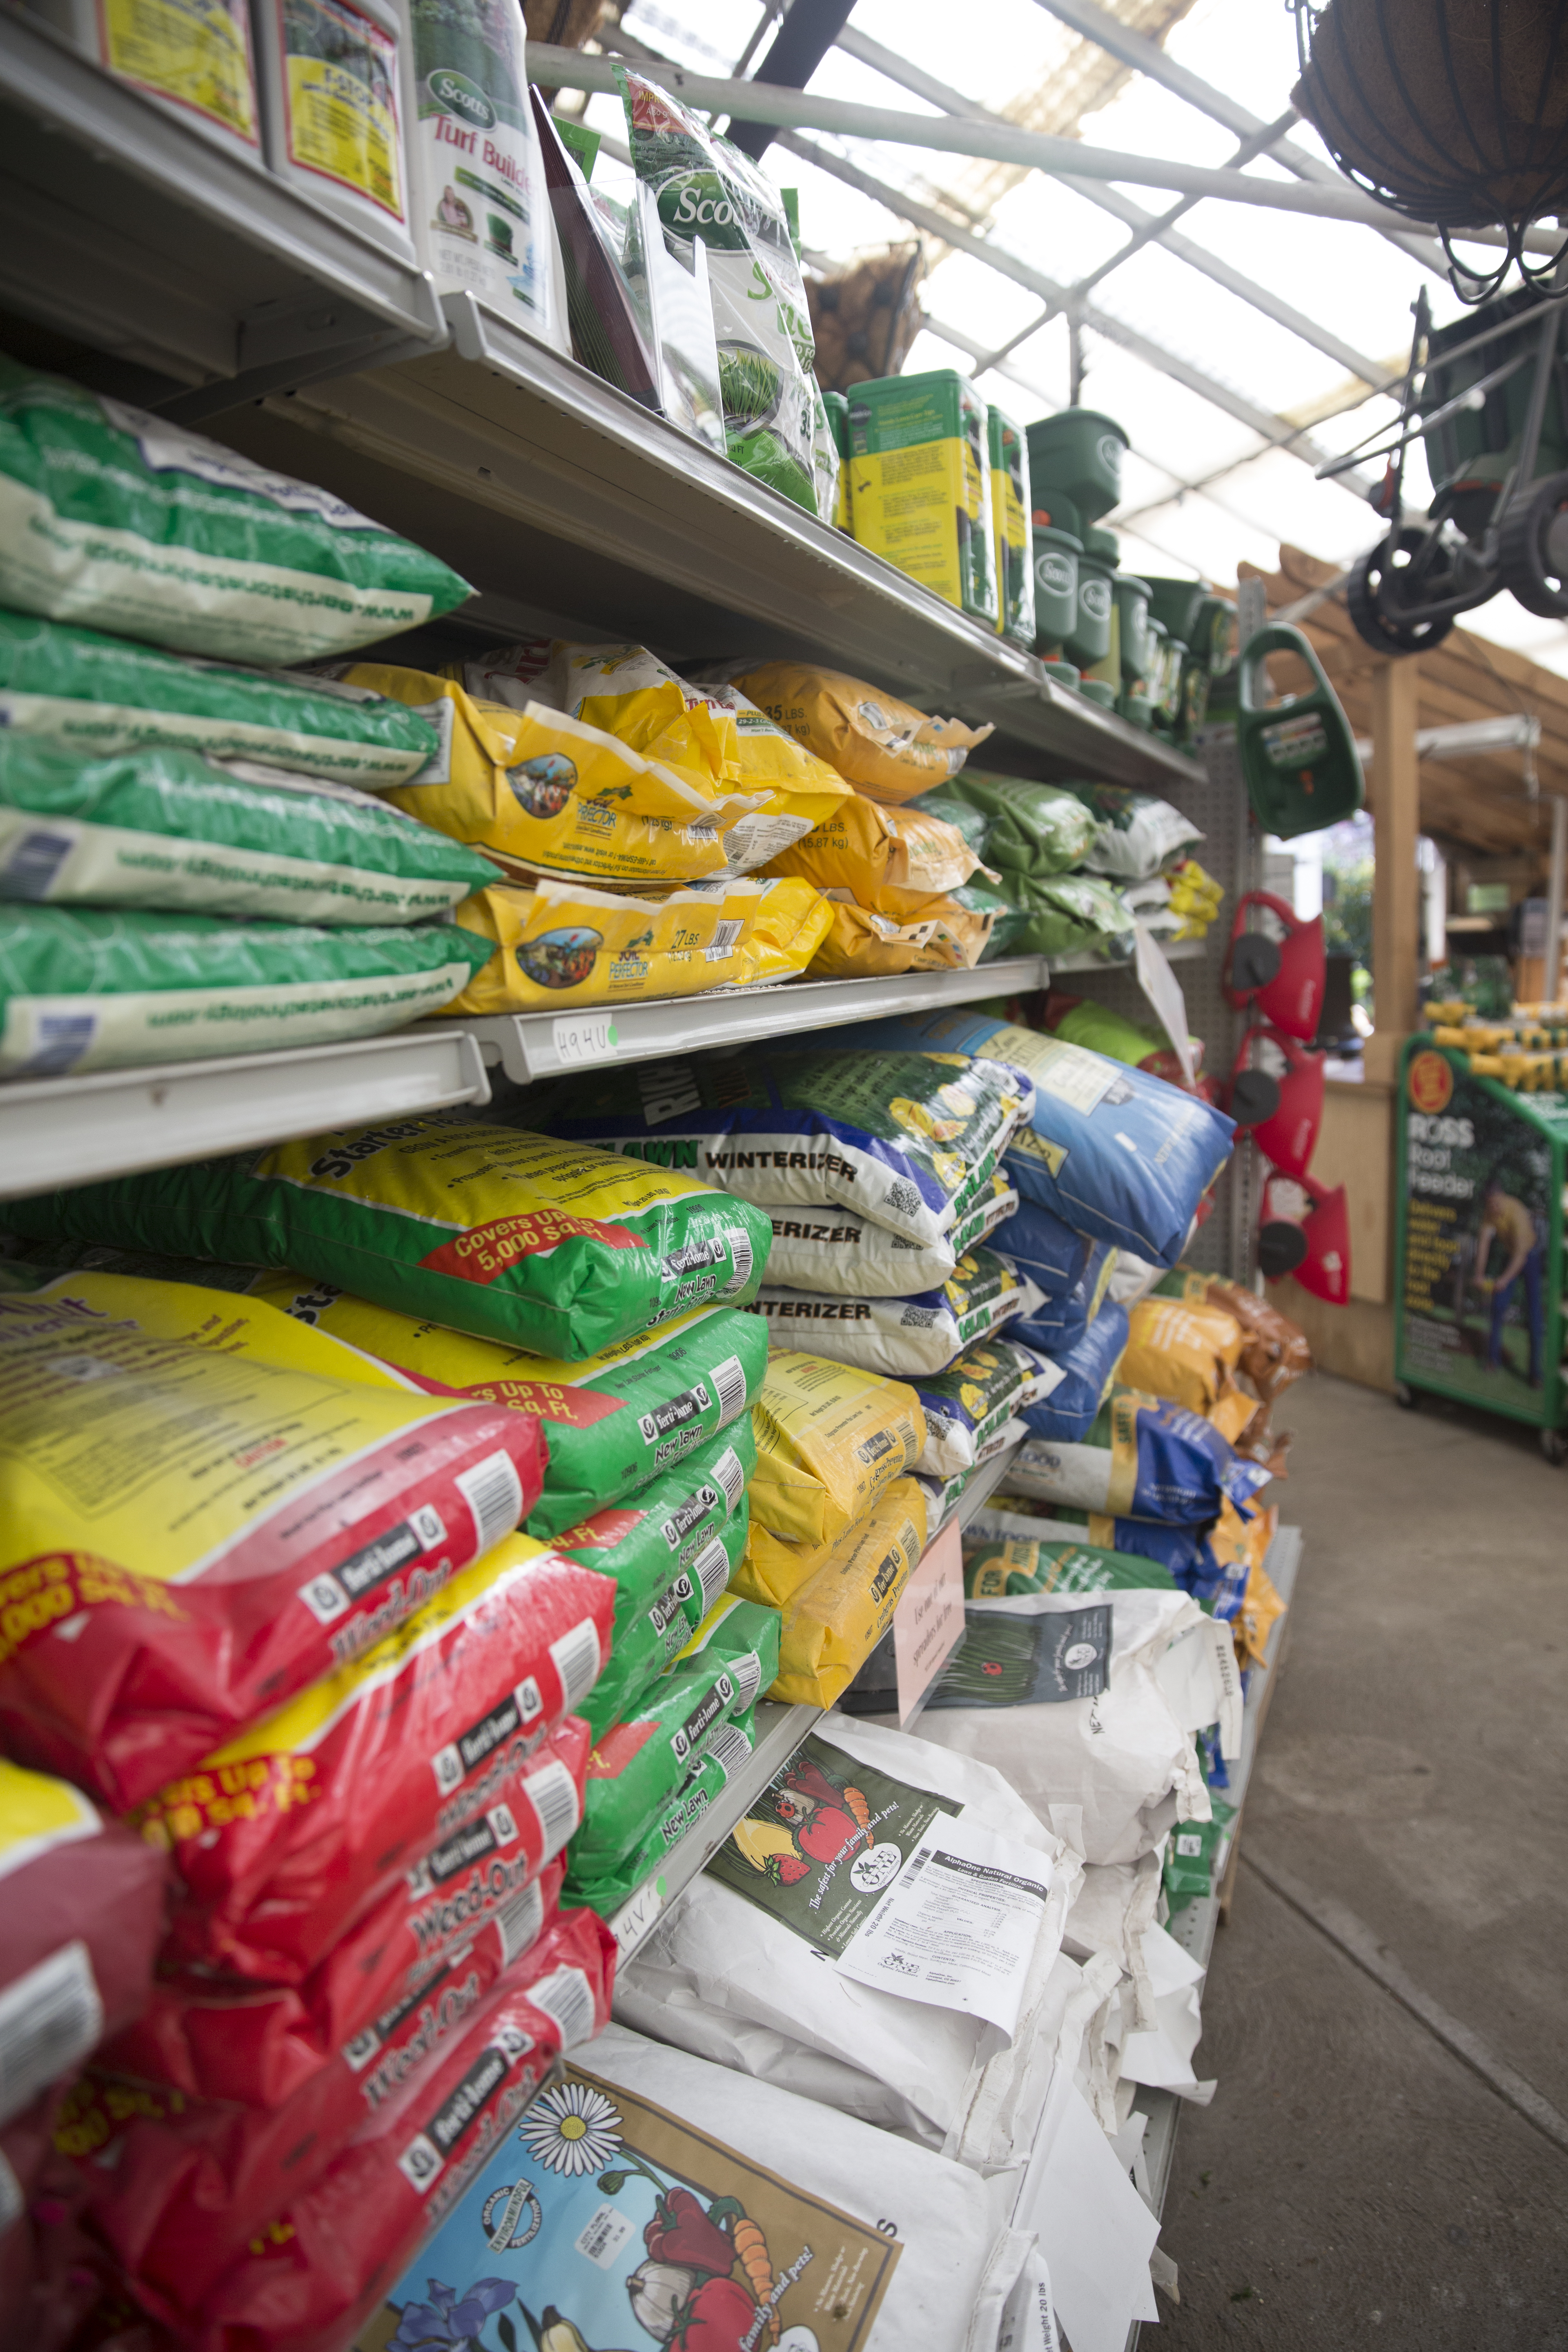 lawn care supplies at city floral greenhouse and garden center - Als Garden Center 2